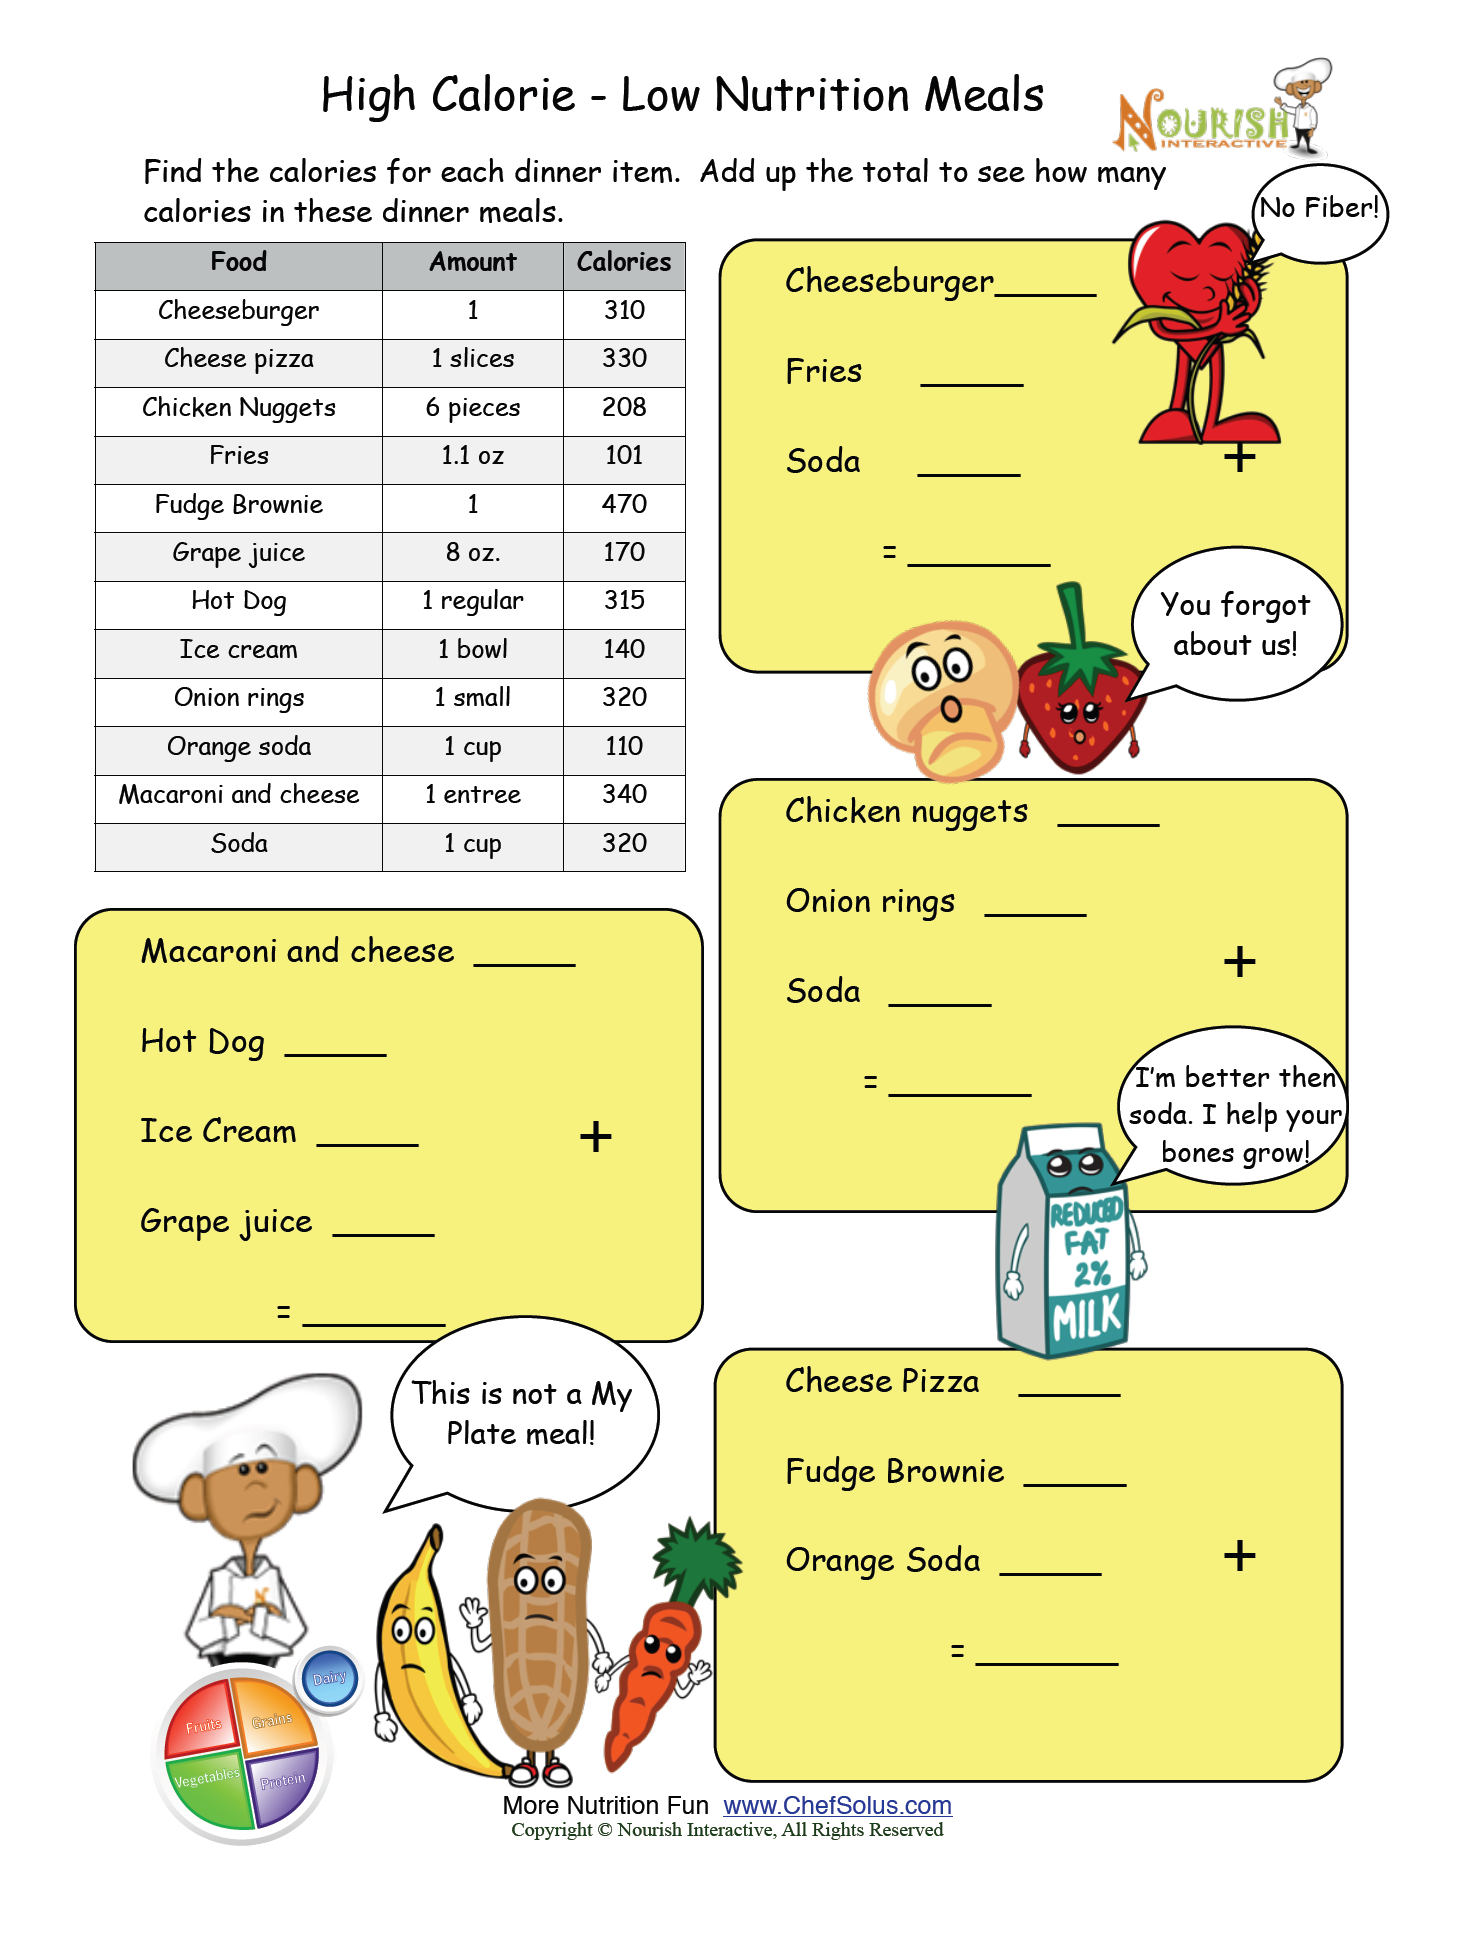 Worksheets Nutrition Worksheets For Elementary high calorie low nutrition meal math worksheet please make sure to print the answer